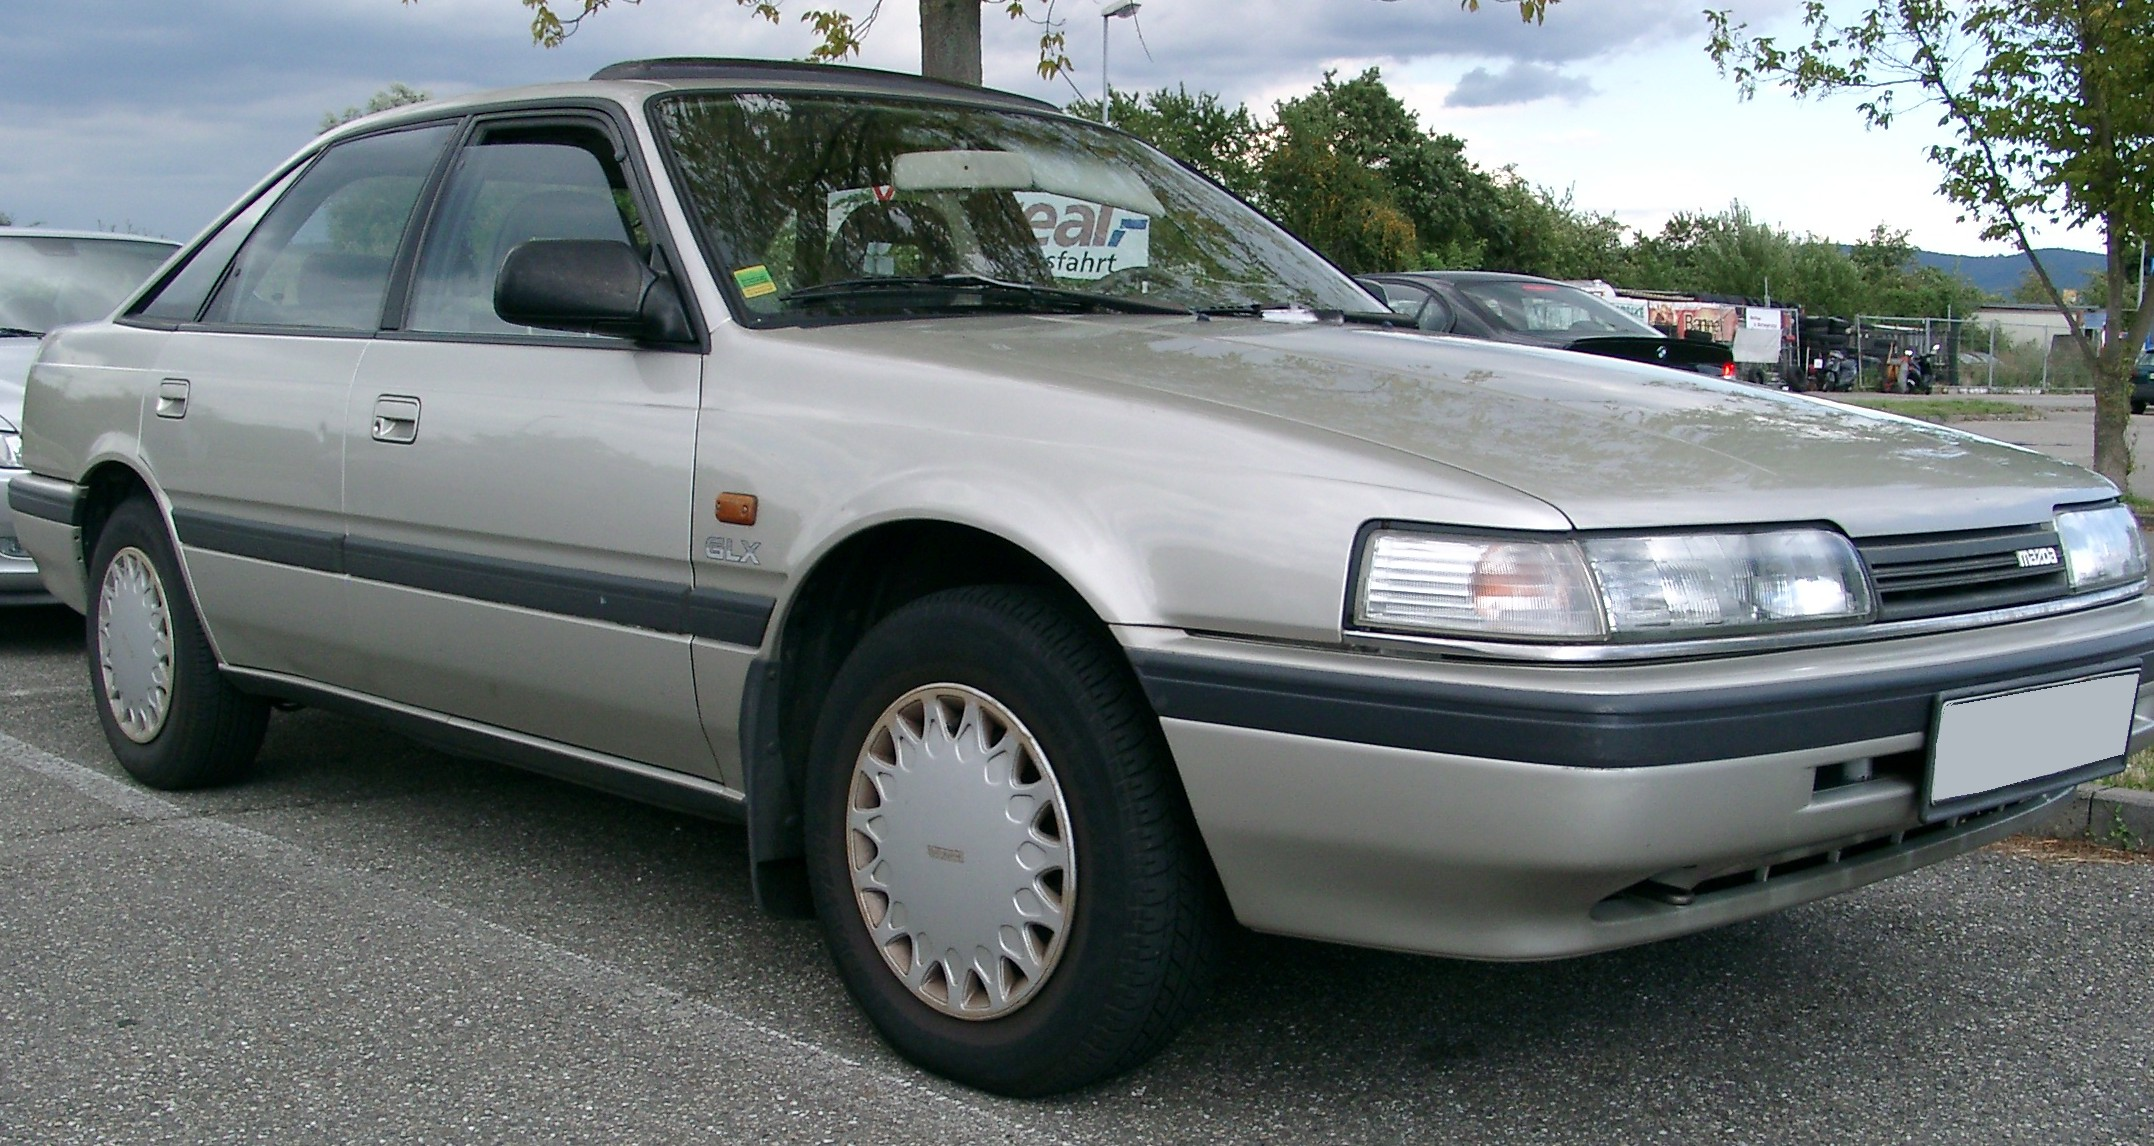 Mazda 626 front Free Download Image Of